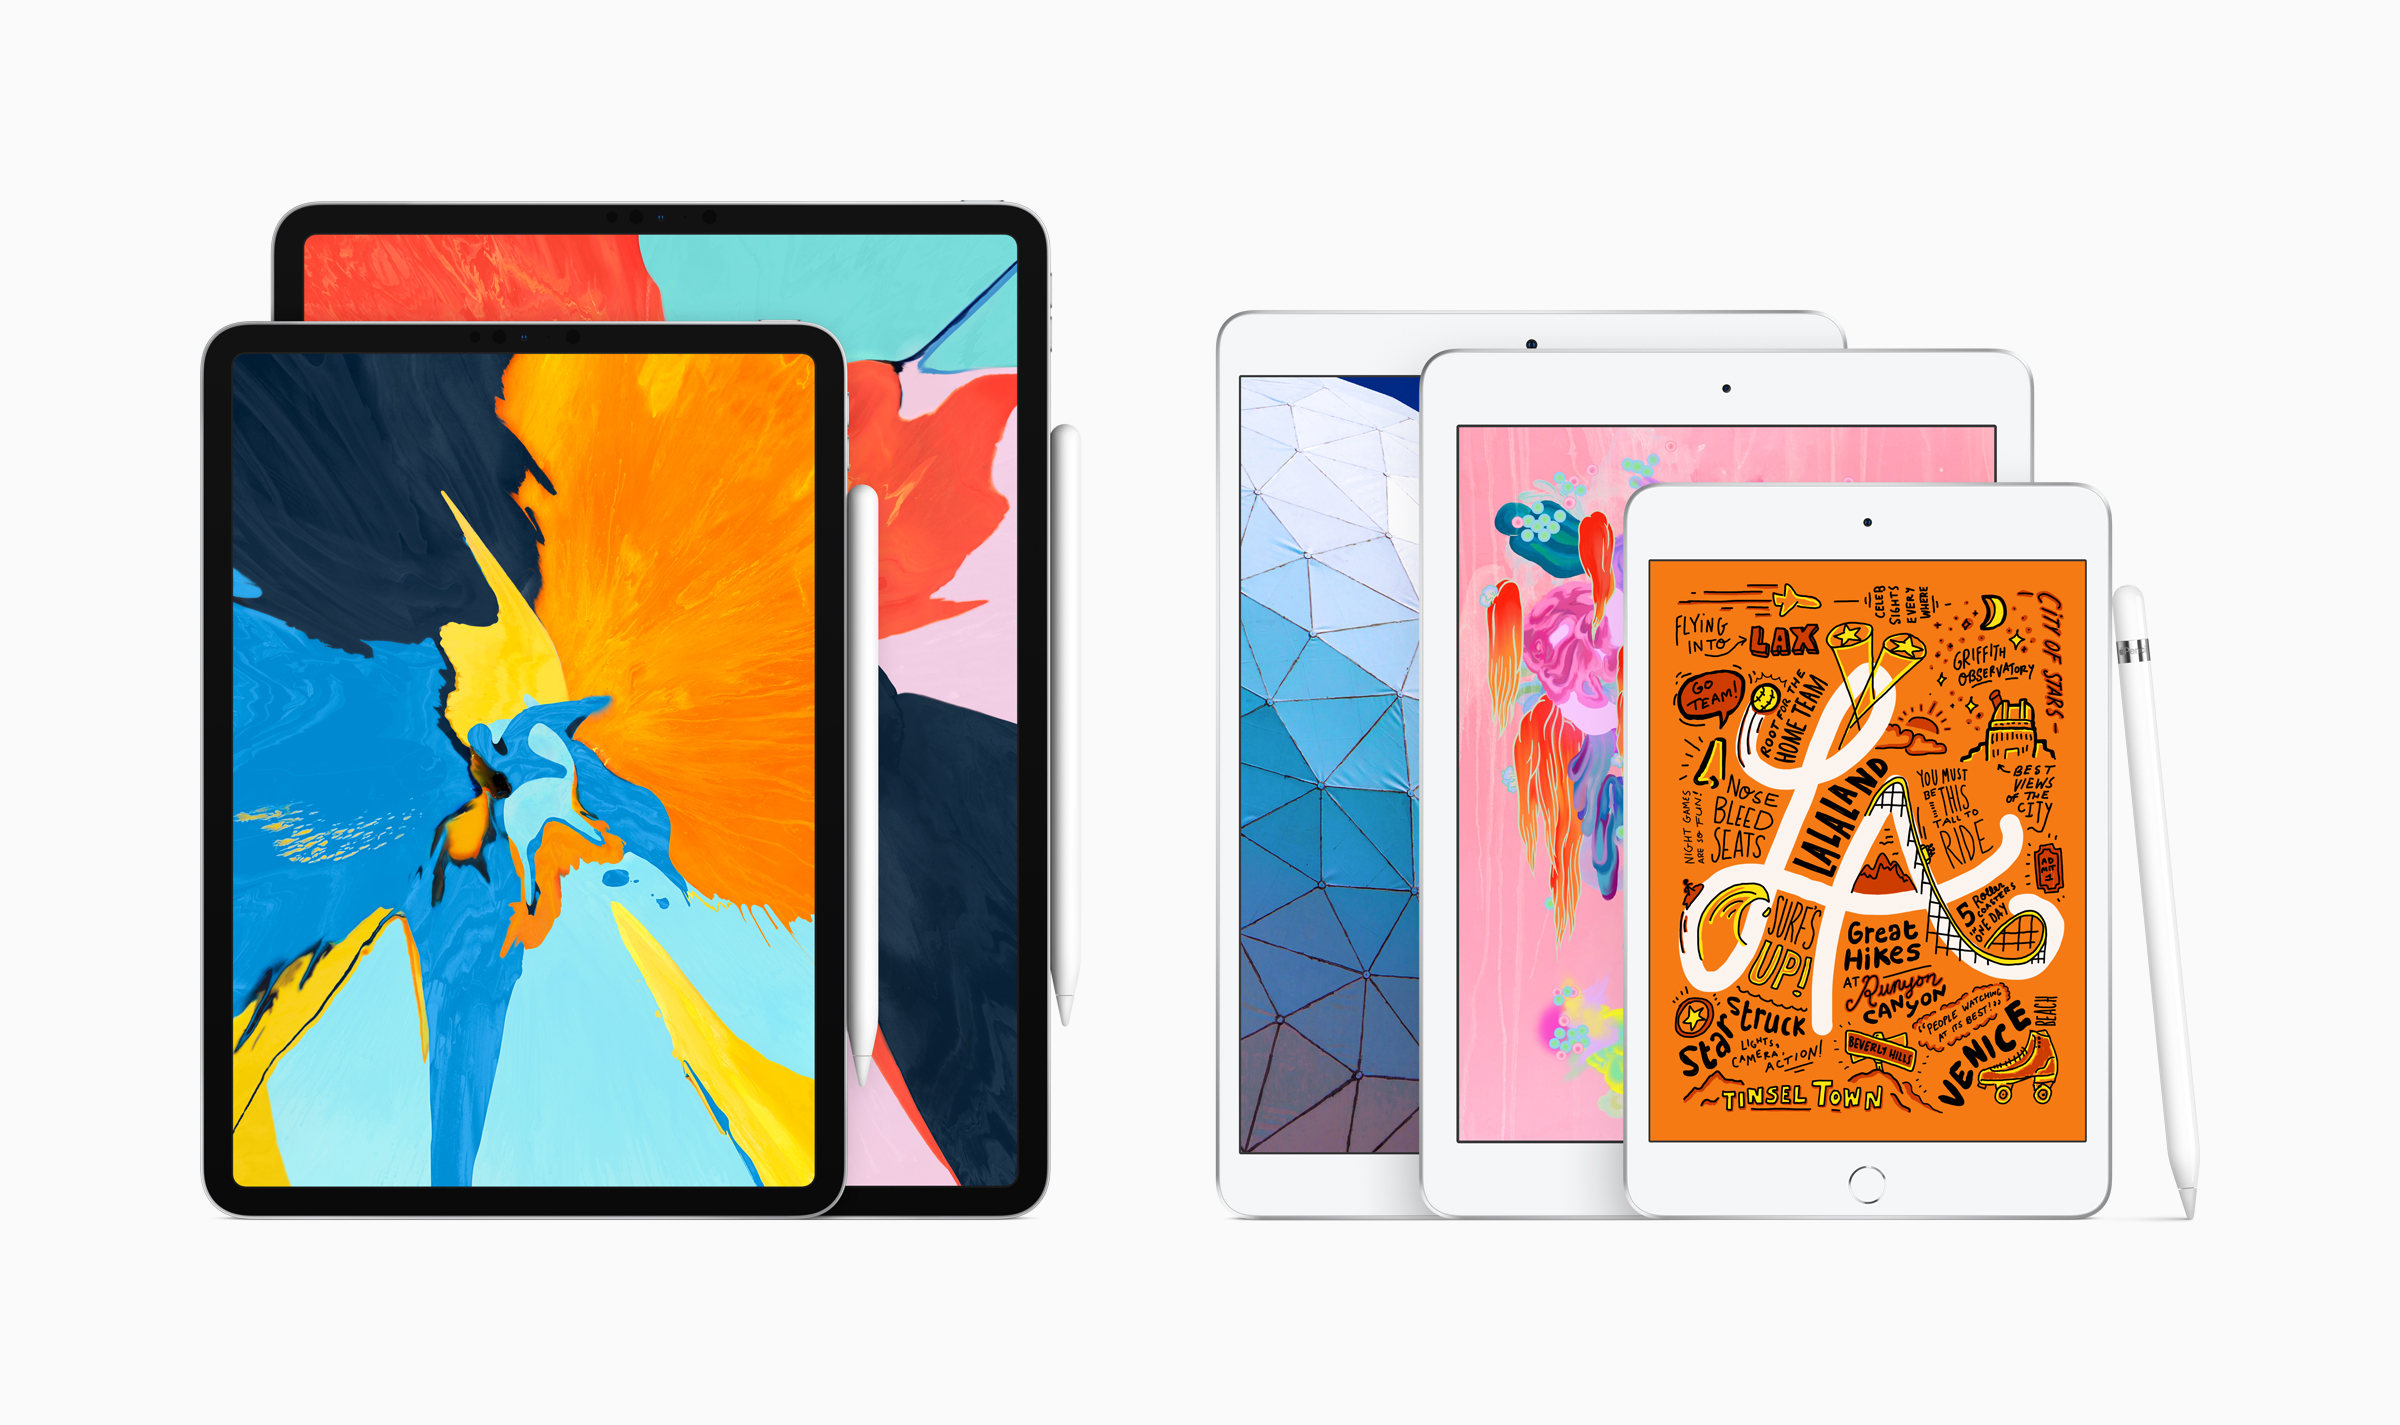 Apple Pencil対応の新型iPad Air、iPad miniが登場